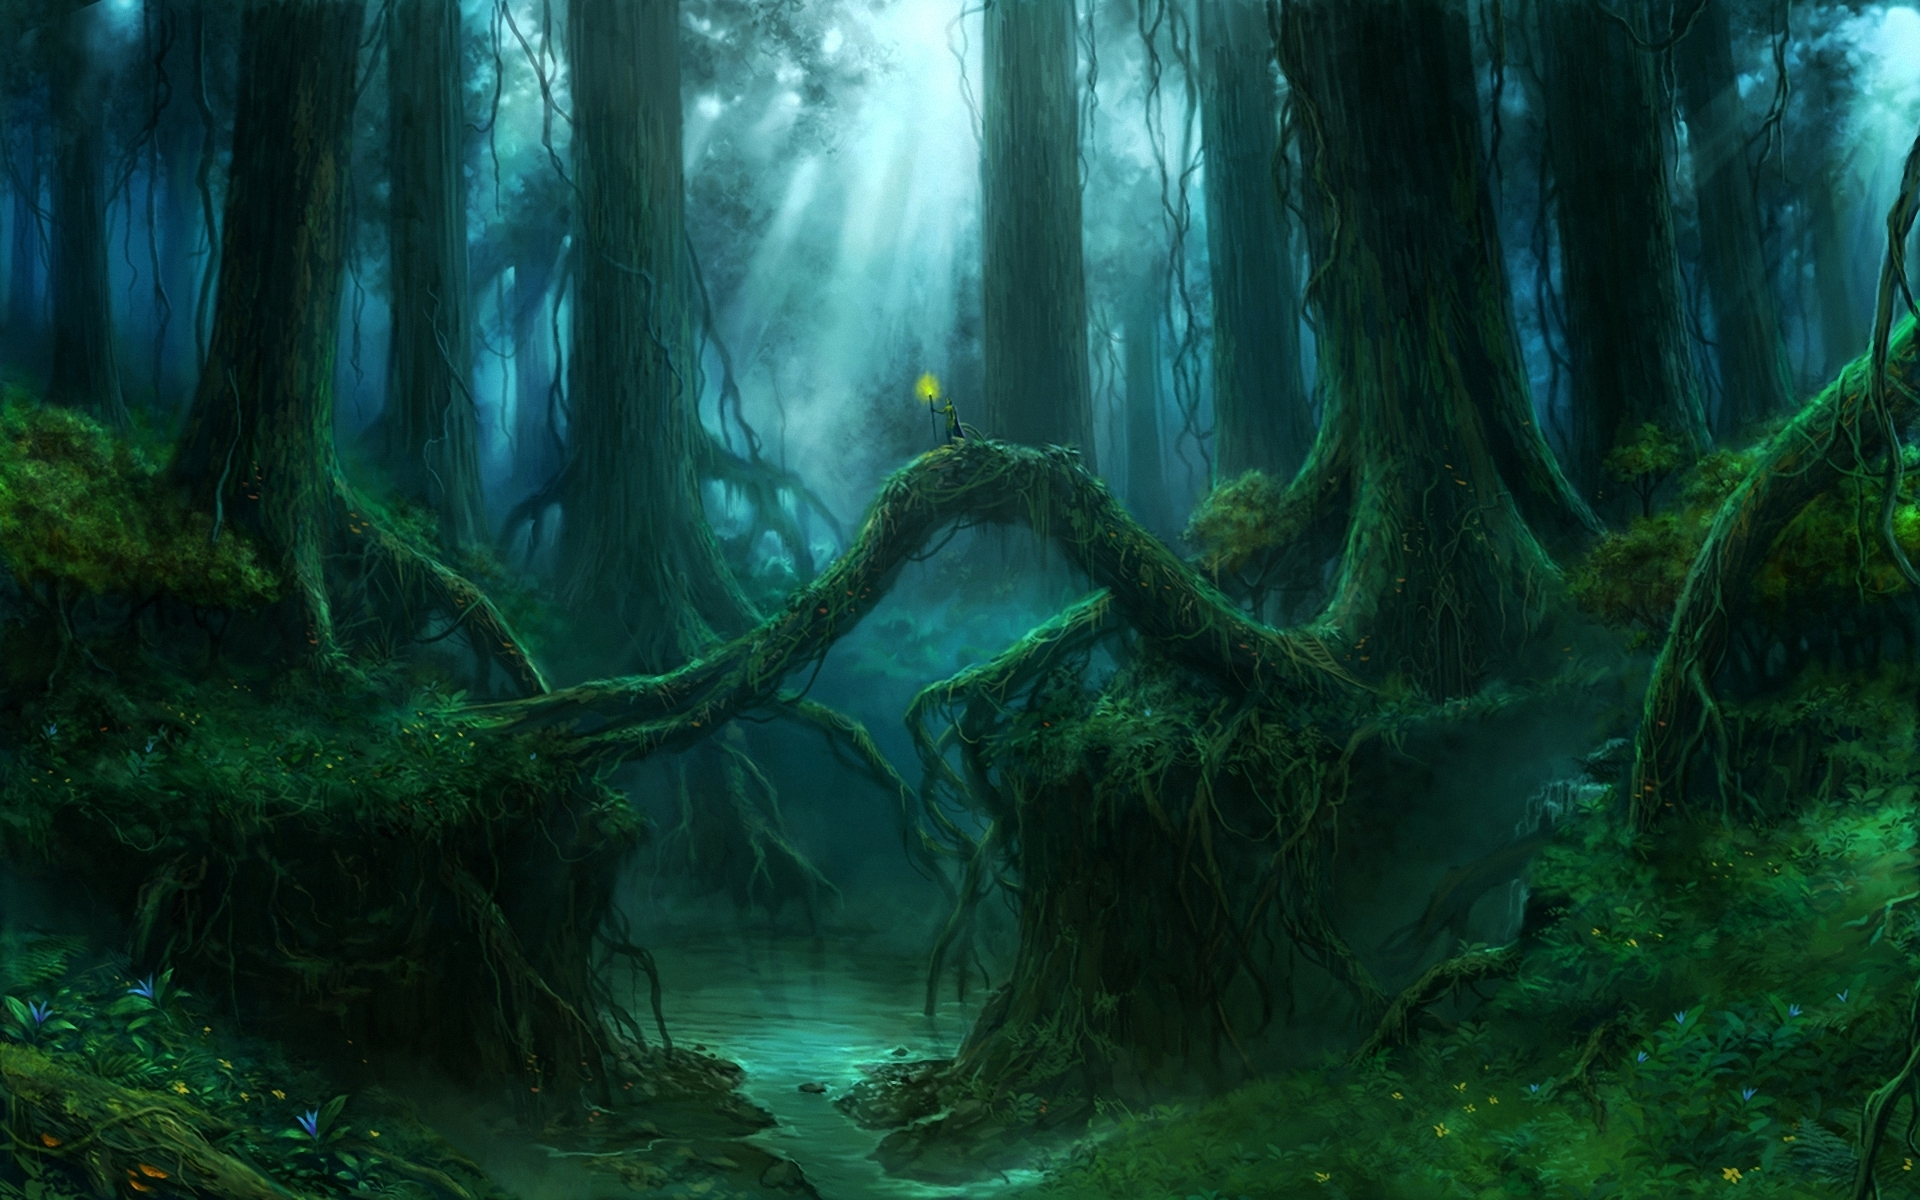 Gothic Forest Trees Fantasy River Mood Wallpaper